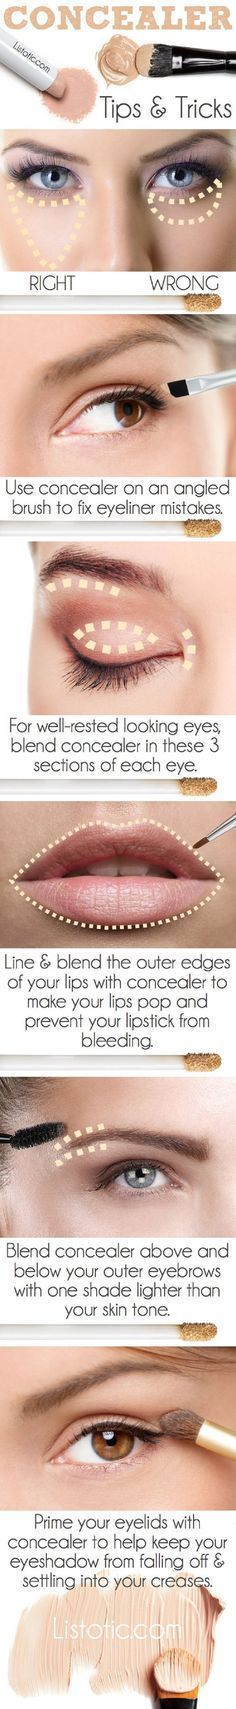 Use Your Concealer The Right Way - 13 Best Makeup Tutorials and Infographics for…